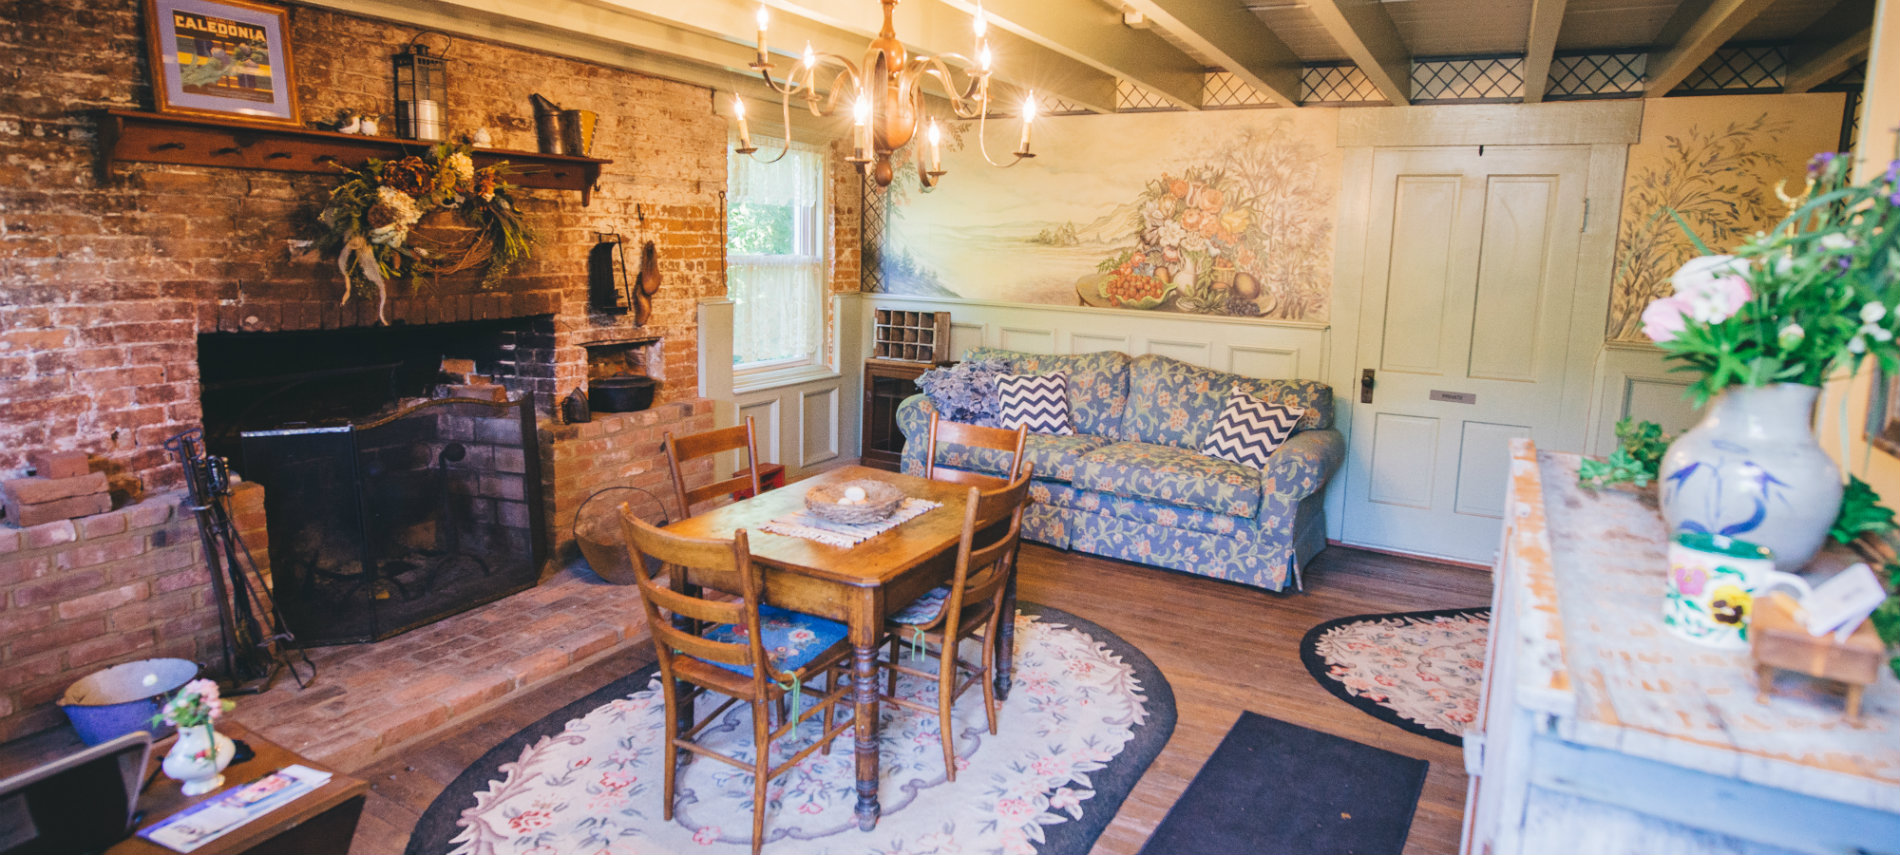 The beautiful Keeping Room at the Old Caledonian B&B, with a colorful mural and period furnishings, is pictured.